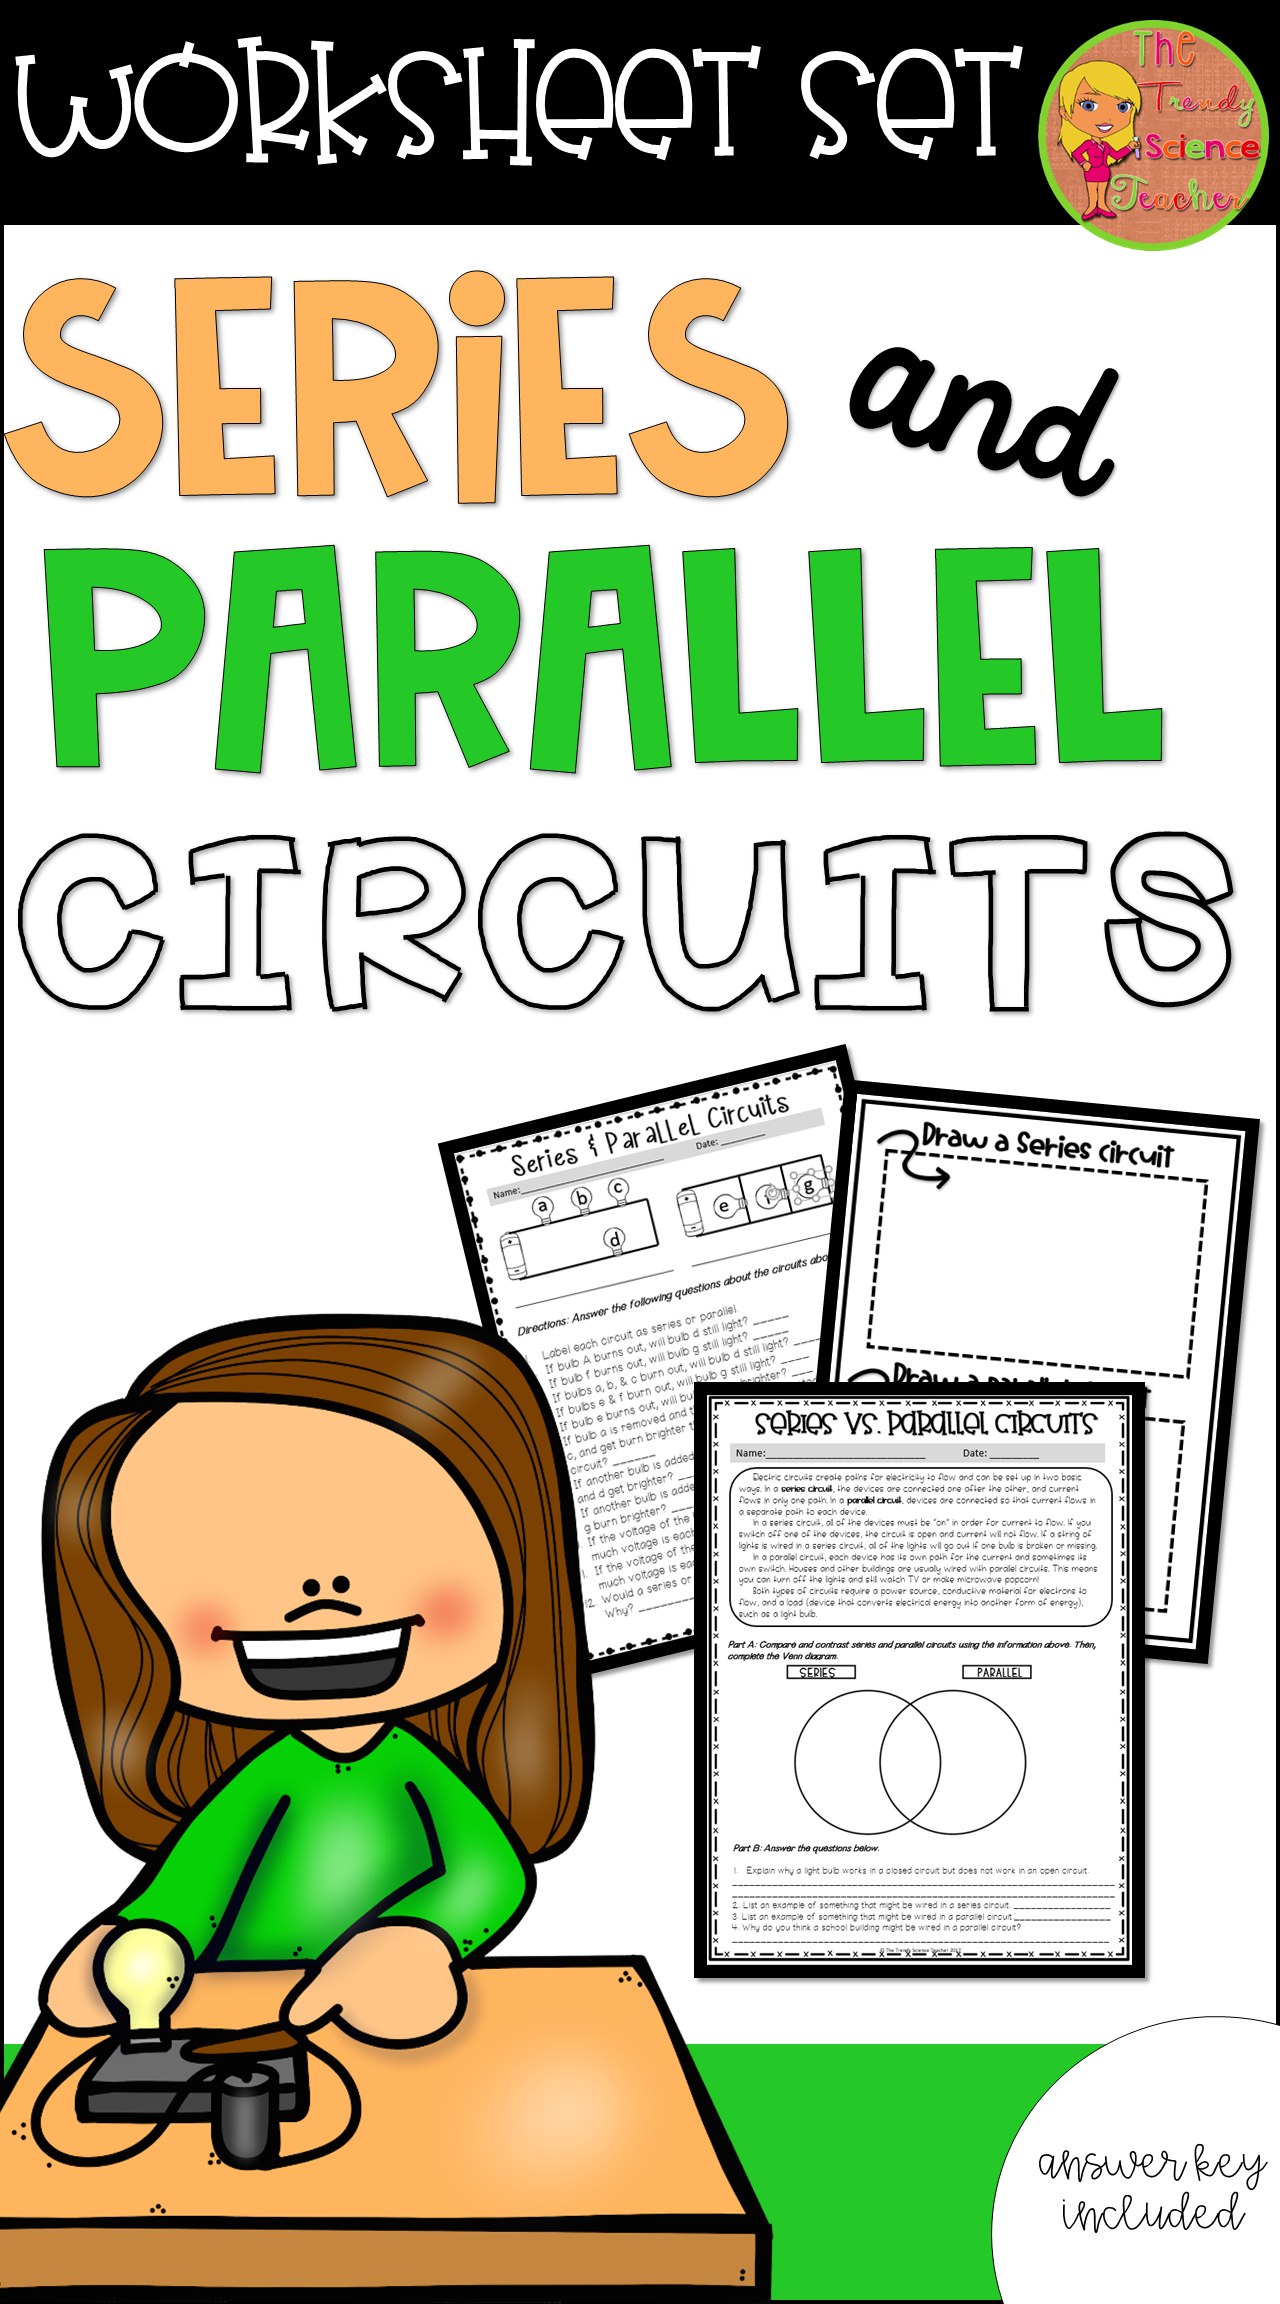 Series And Parallel Circuits Worksheet Set Creative Creations Example Of Circuit Use This As Review Reinforcement In During Your Next Electricity Unit